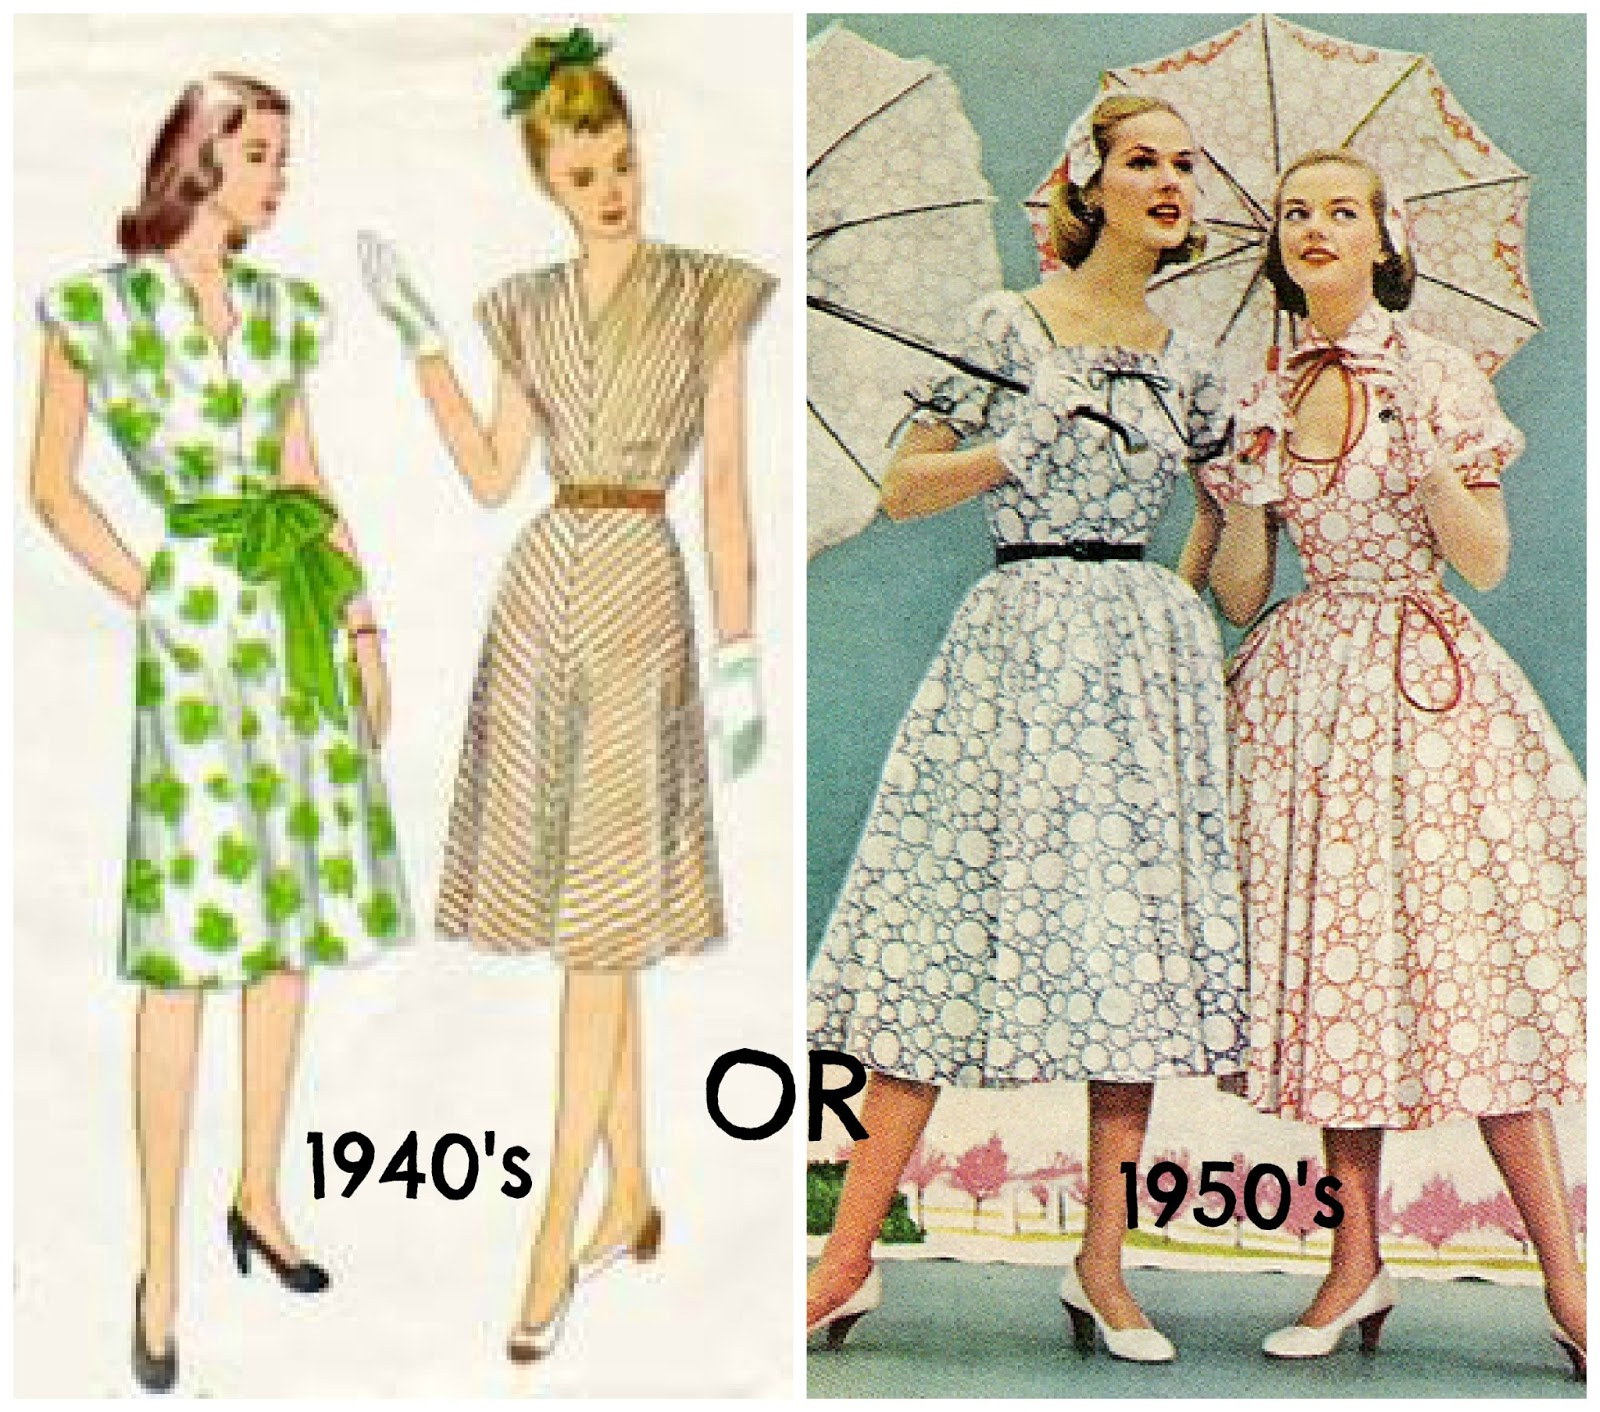 1940s clothing style the 1940 s or 1950 s which to